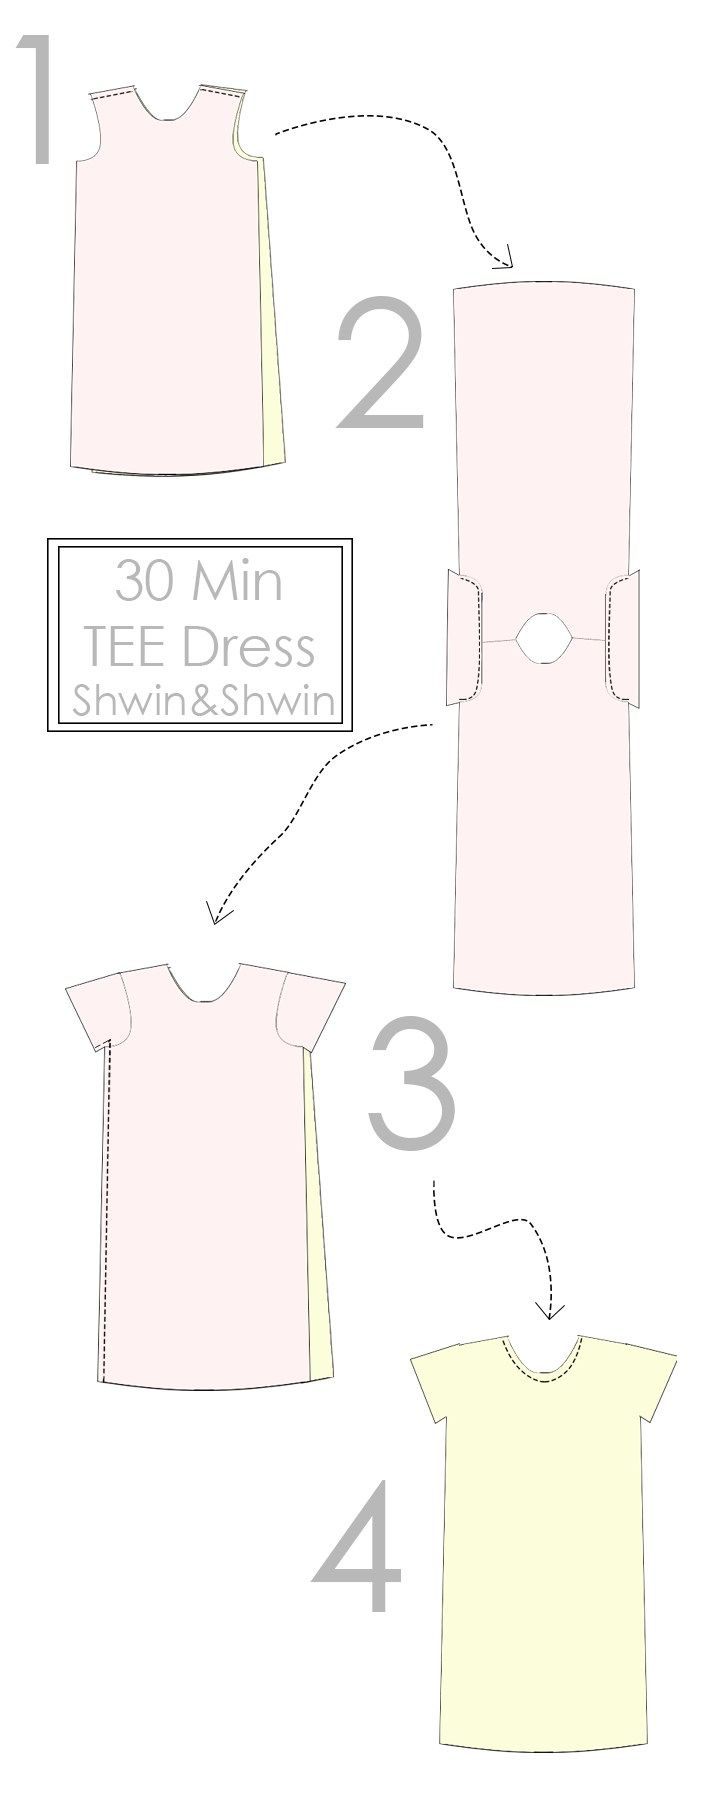 30 Min Tee Shirt Dress || Free PDF Pattern || Shwin&Shwin